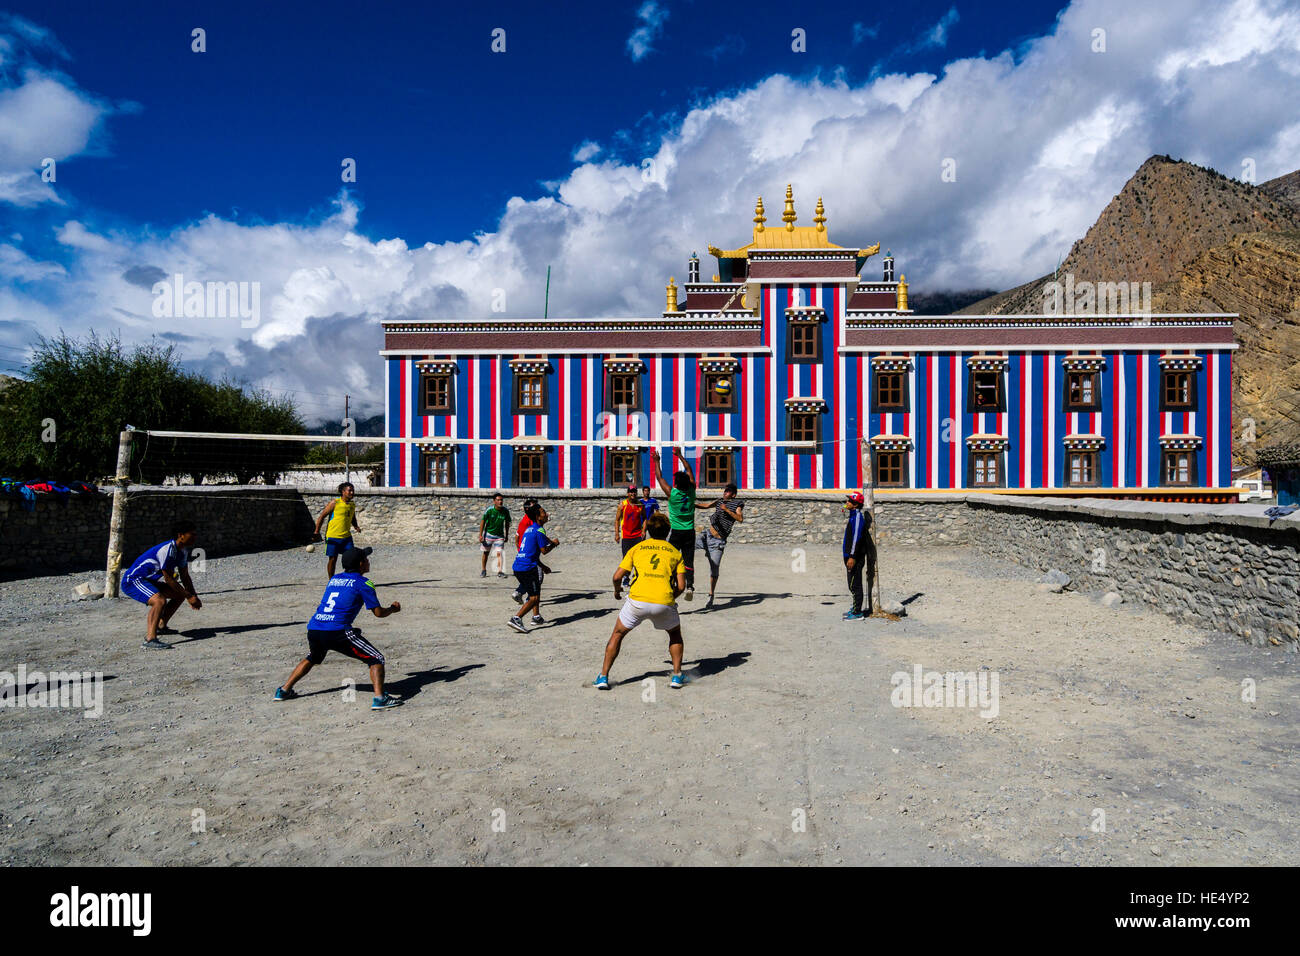 Some young men are playing volleyball in front of the building Sakya Gompa - Stock Image